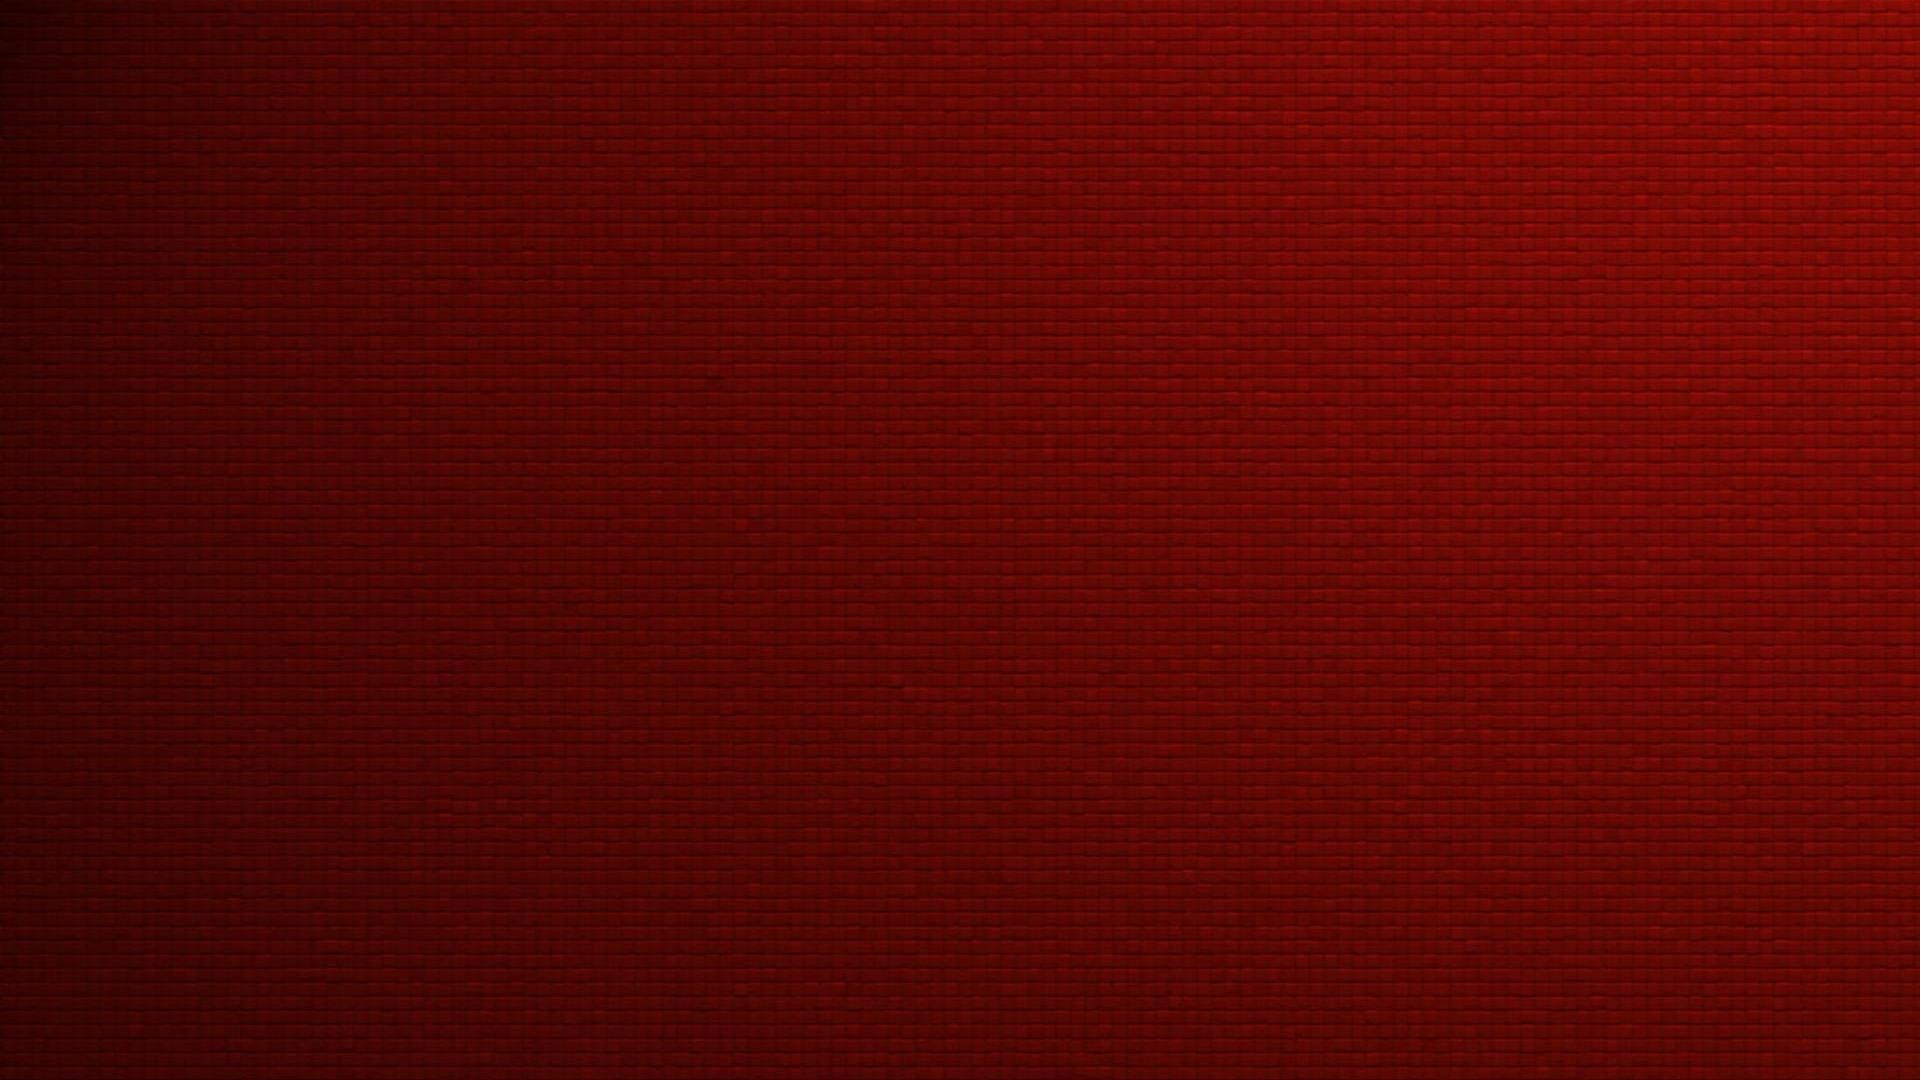 Orange Color Wallpaper Hd Deep Red Background 49 Images